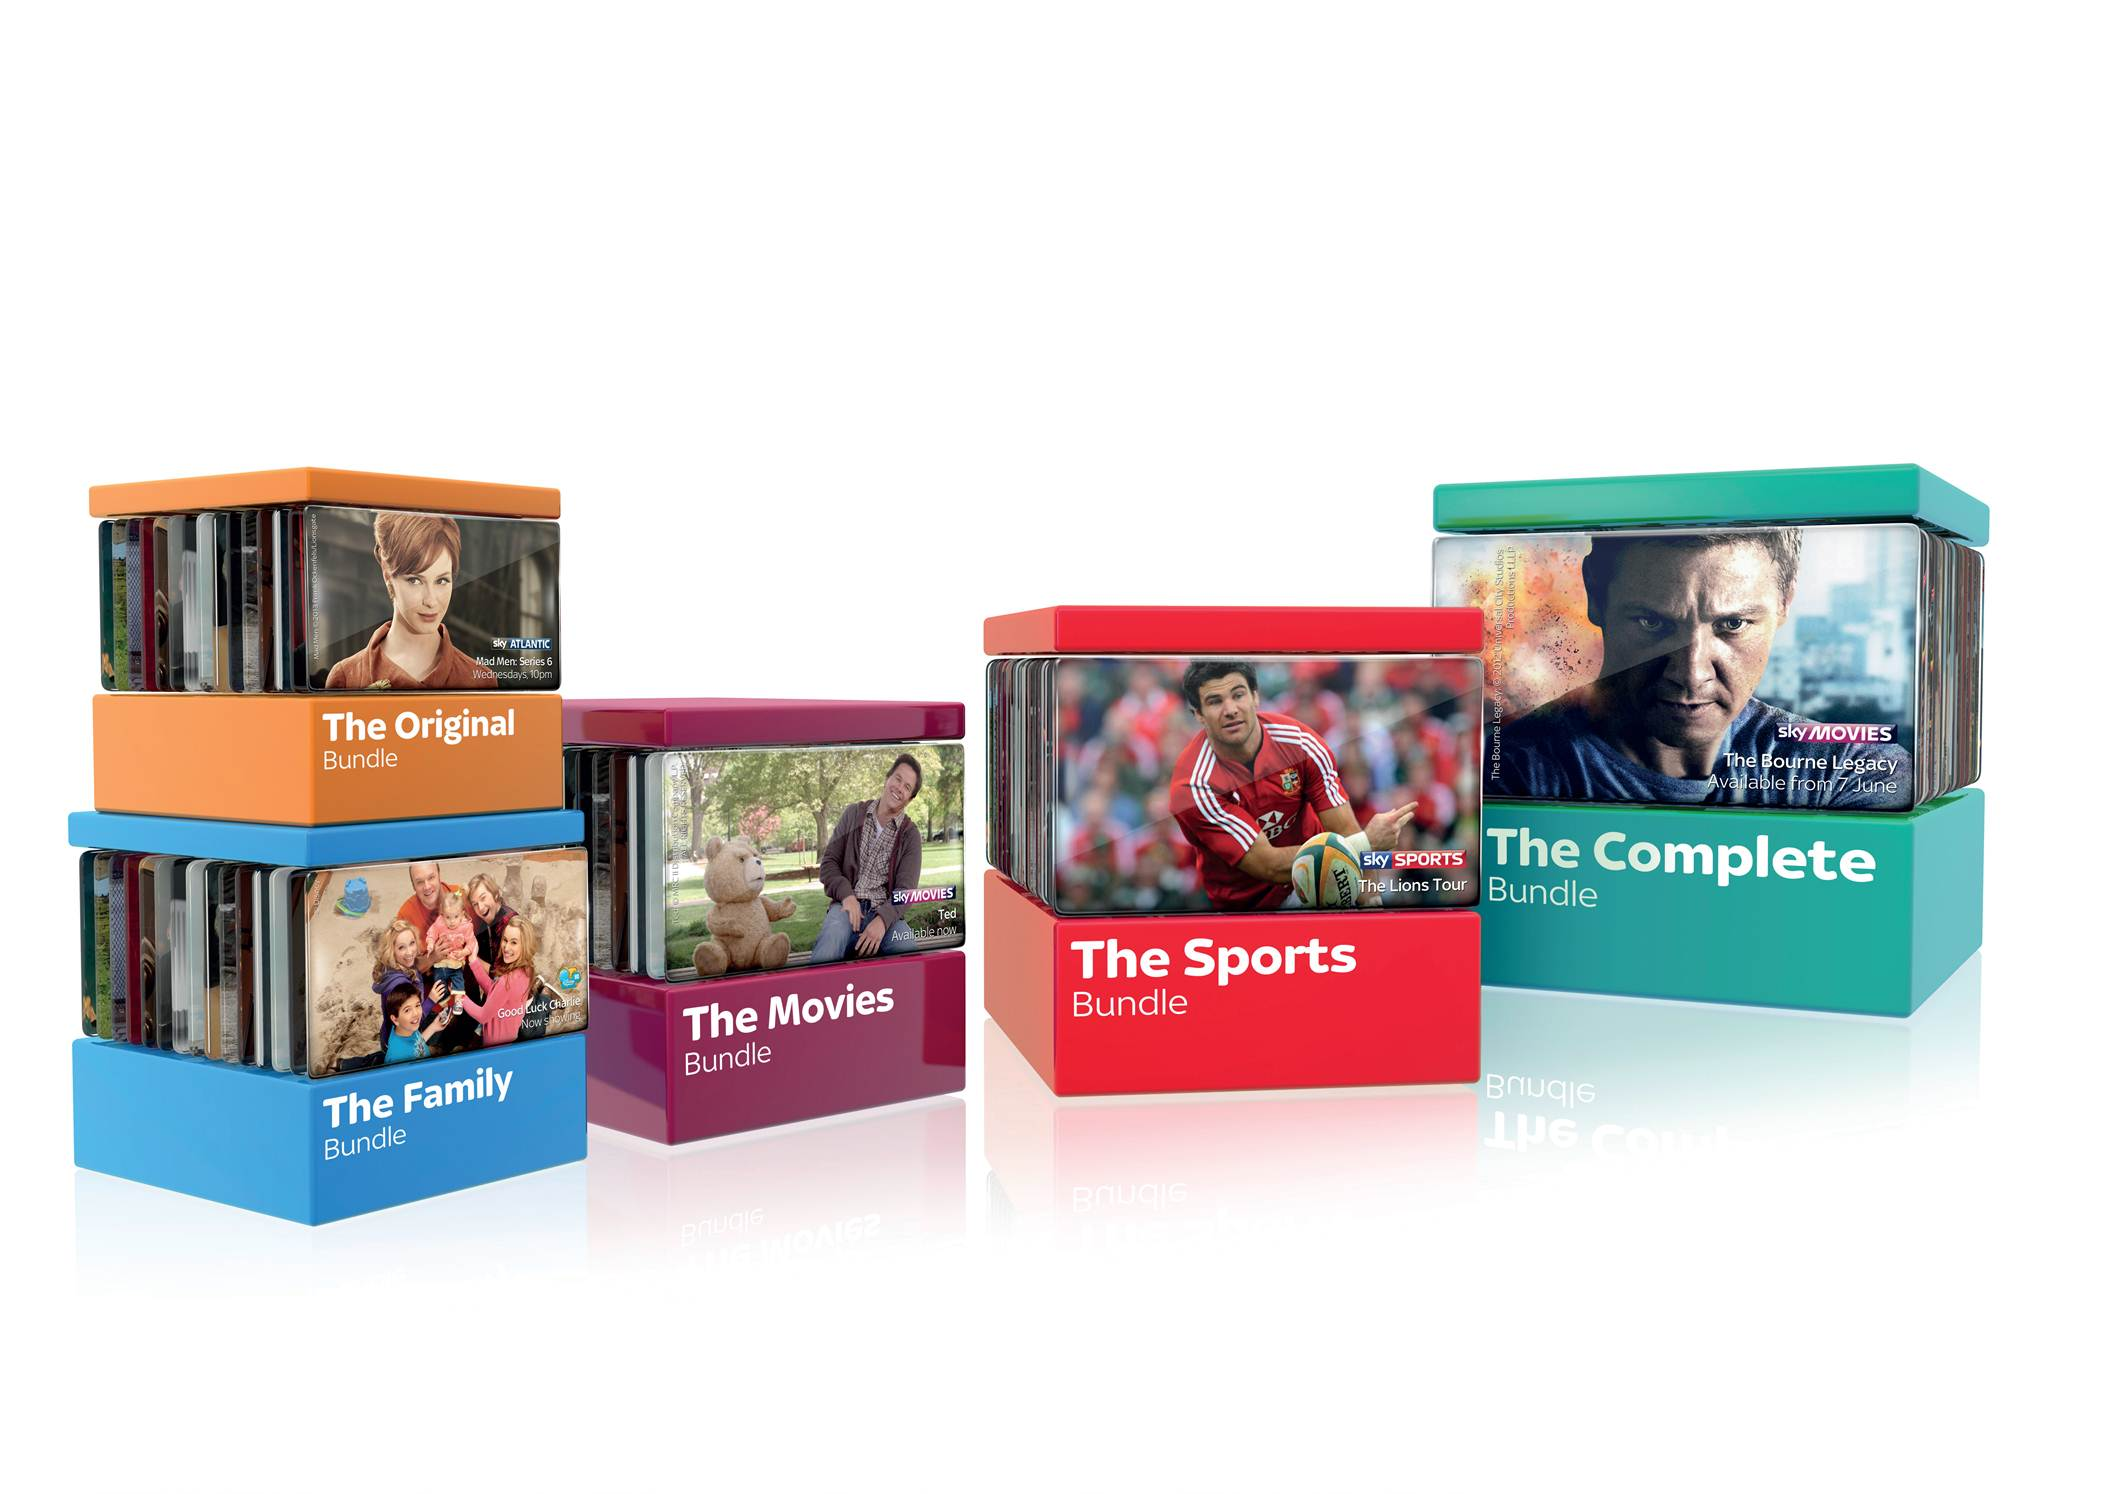 Speed up your home with sky hughes blog for Rooms to go tv package 2015